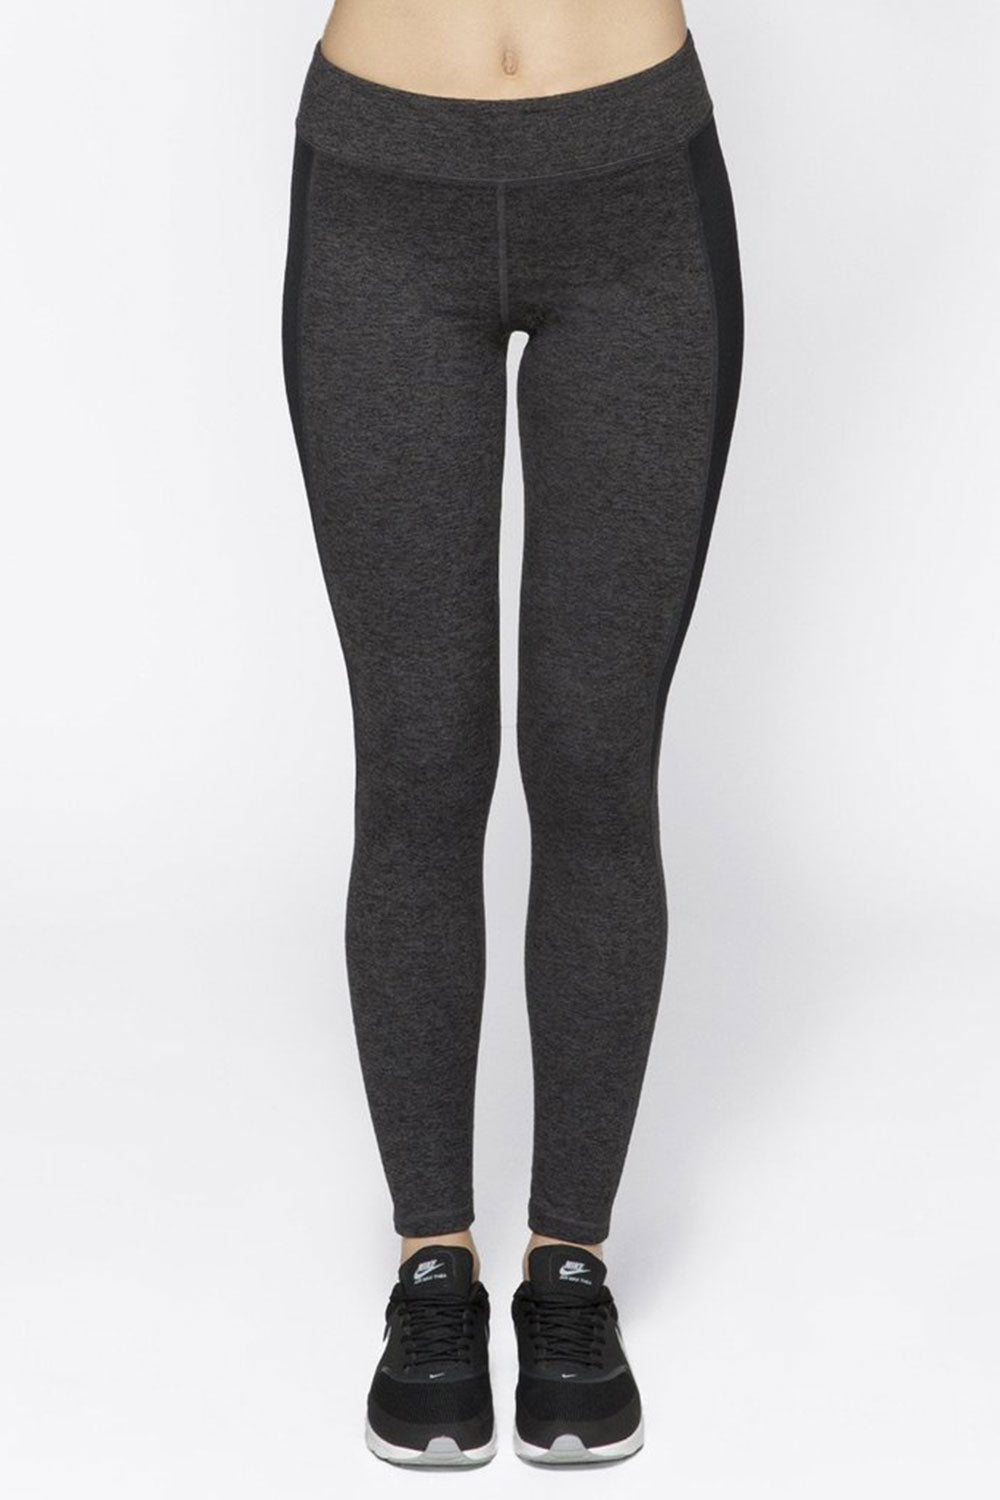 Alala All Day Tight - Charcoal - Sculptique